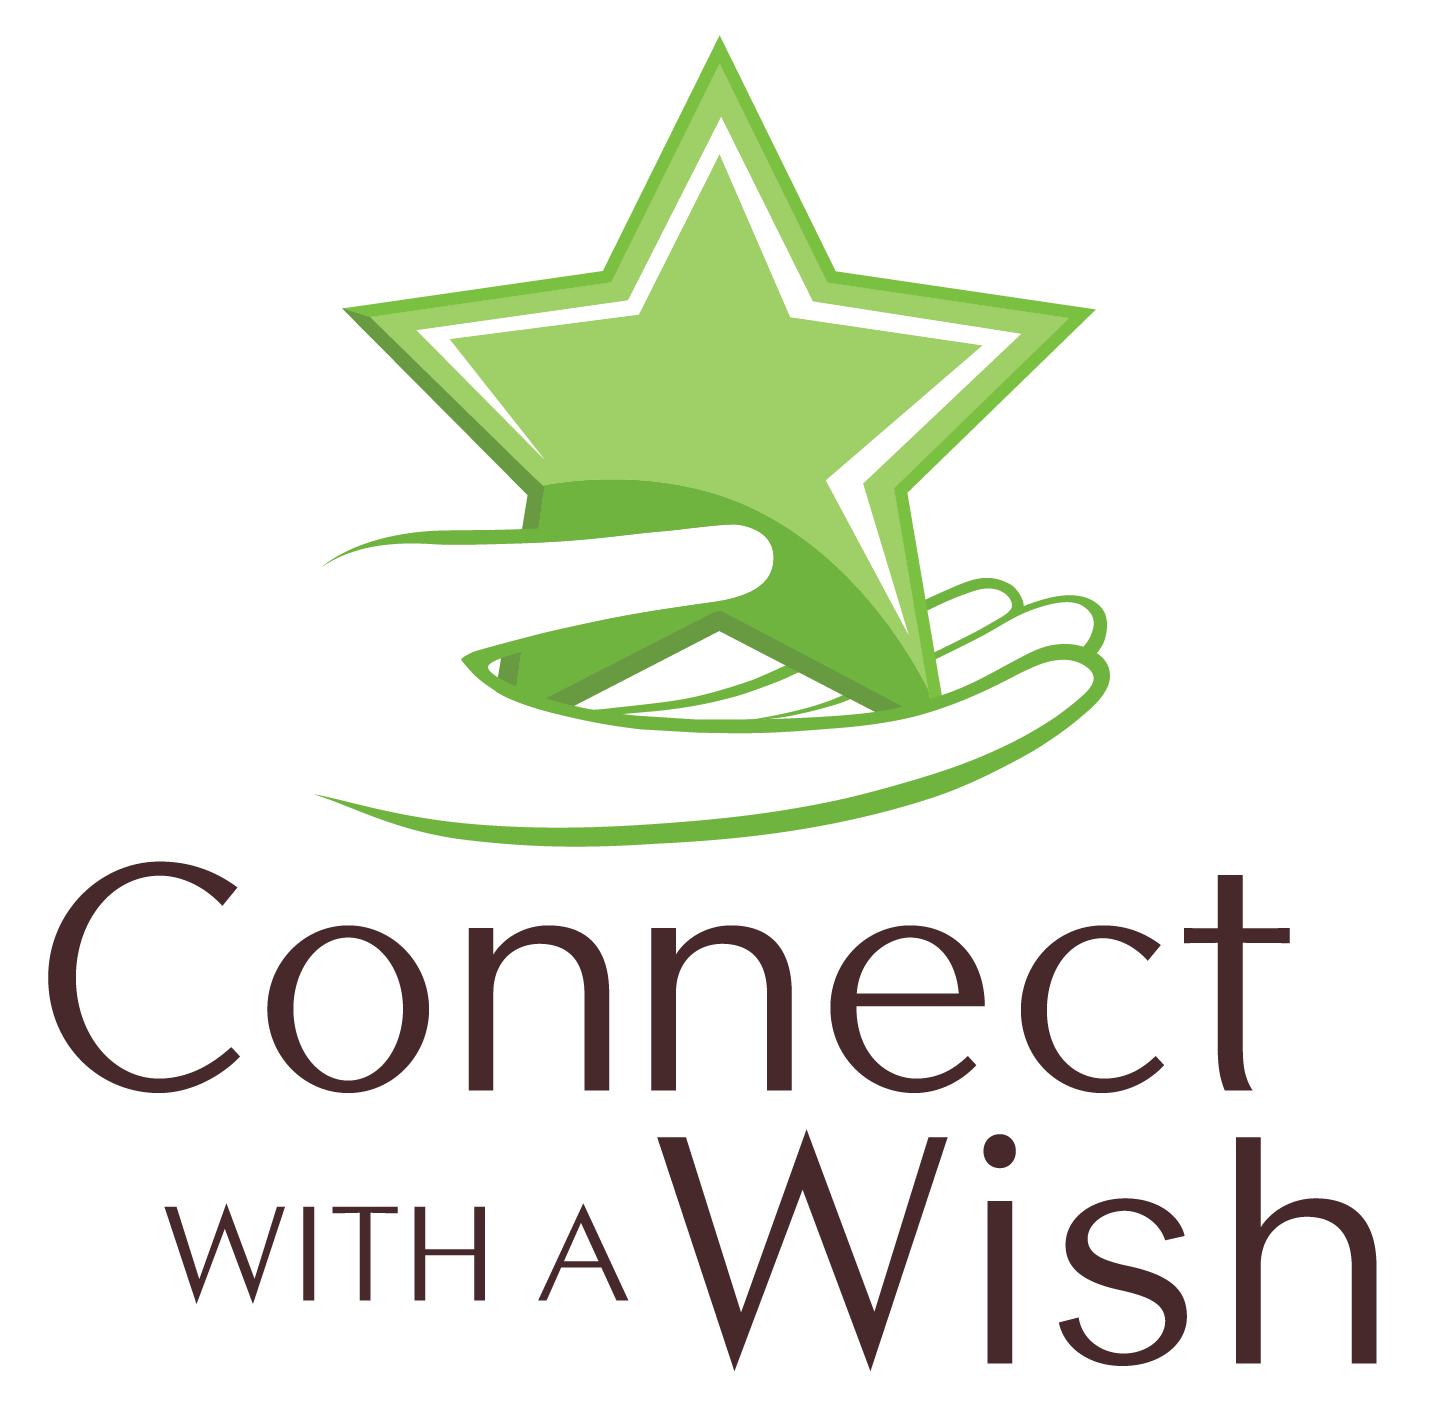 CONNECT WITH A WISH INC